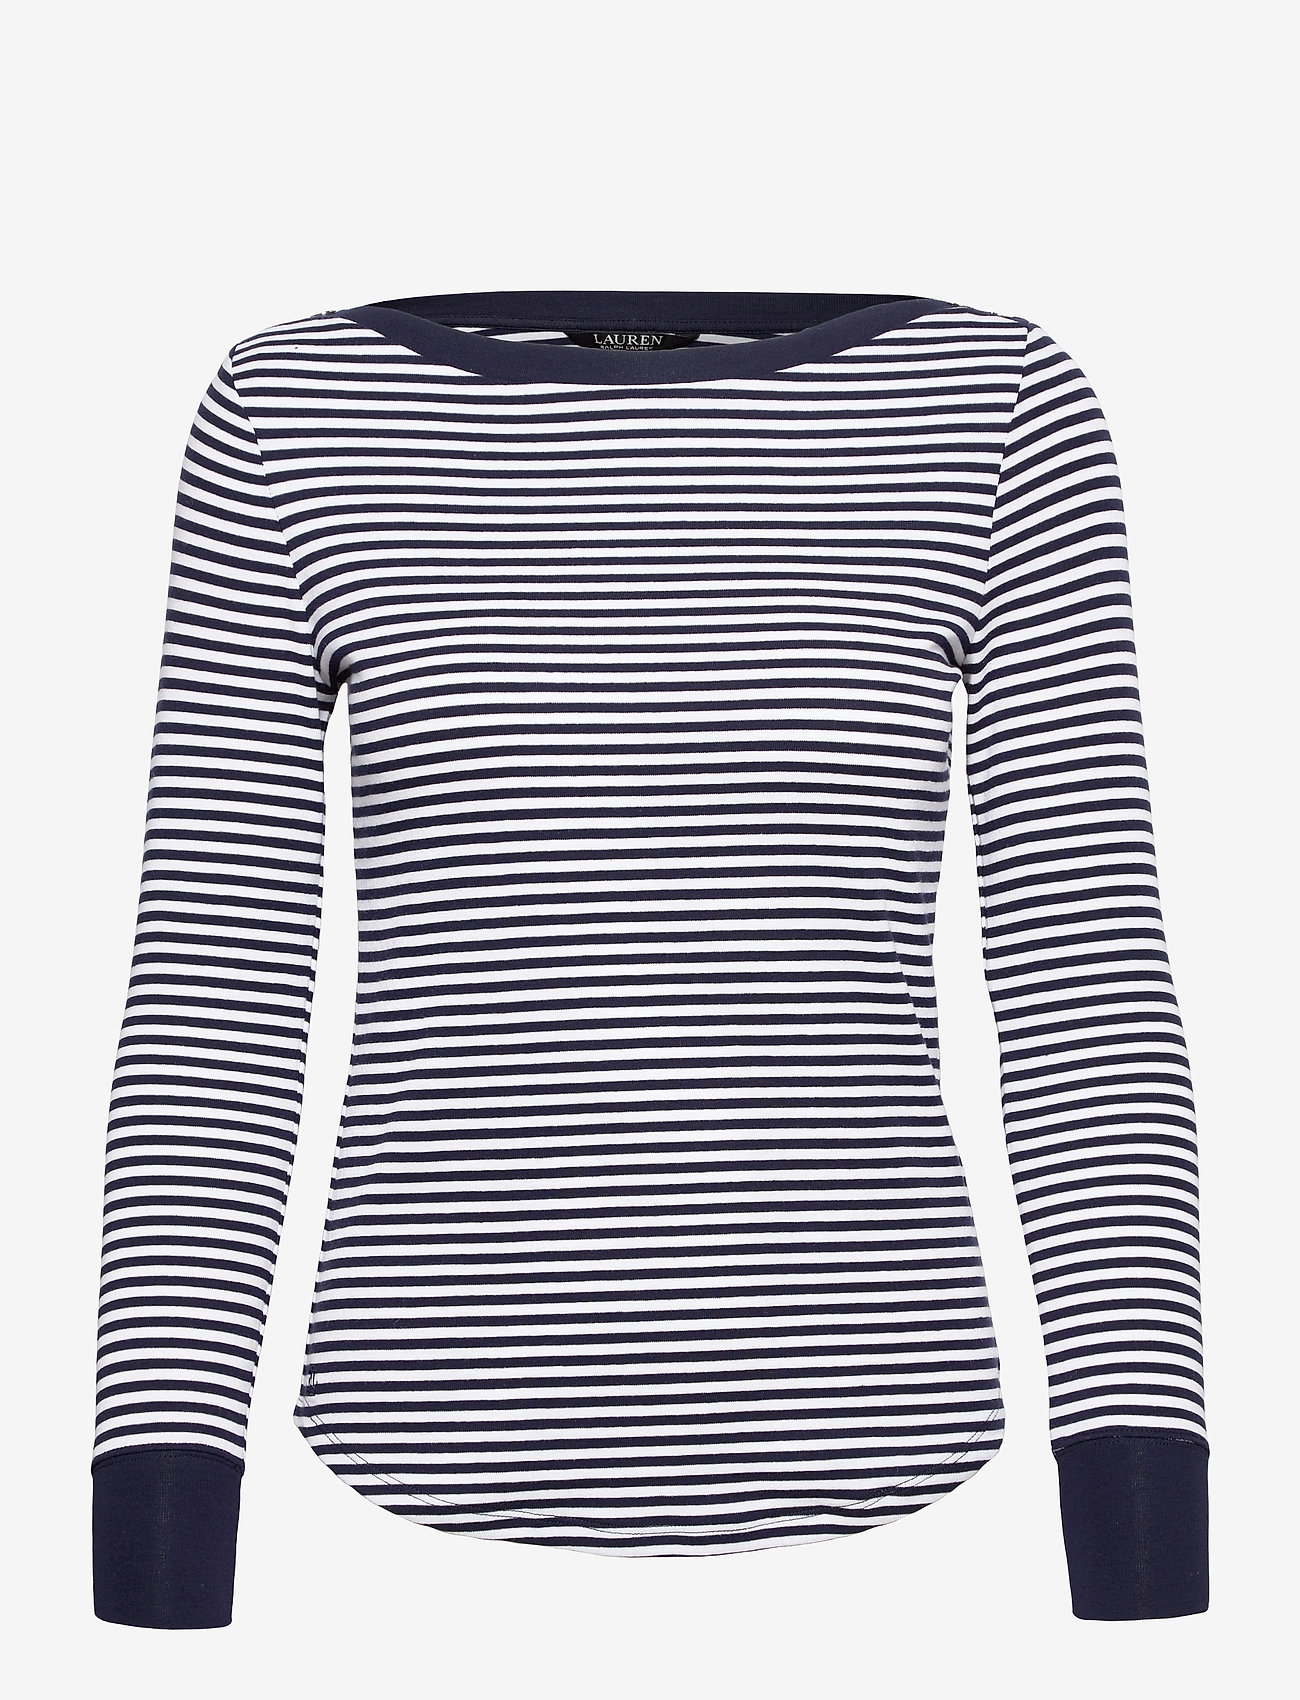 Lauren Ralph Lauren - Striped Snap-Trim Drop-Needle Top - langærmede toppe - french navy/white - 1